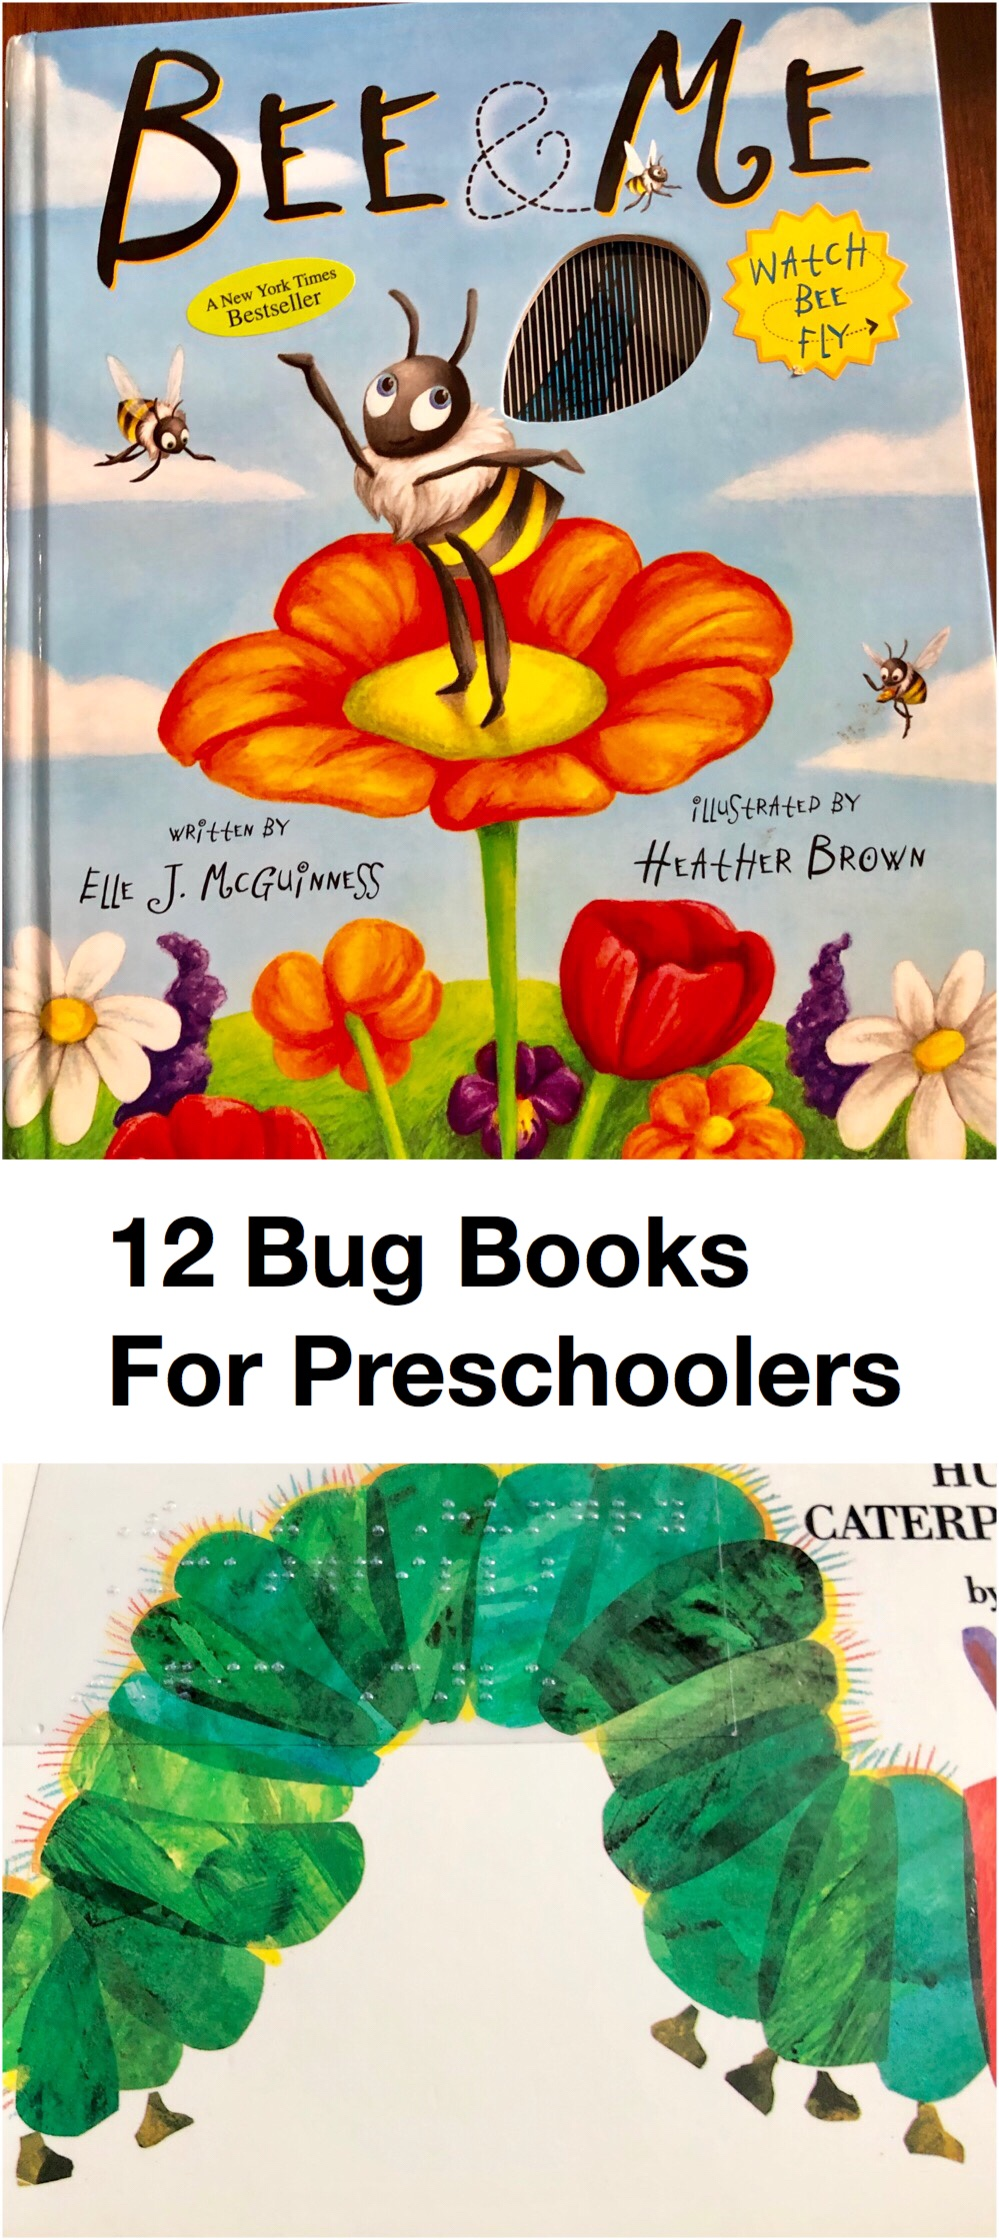 12 Bug Books for Preschoolers pin